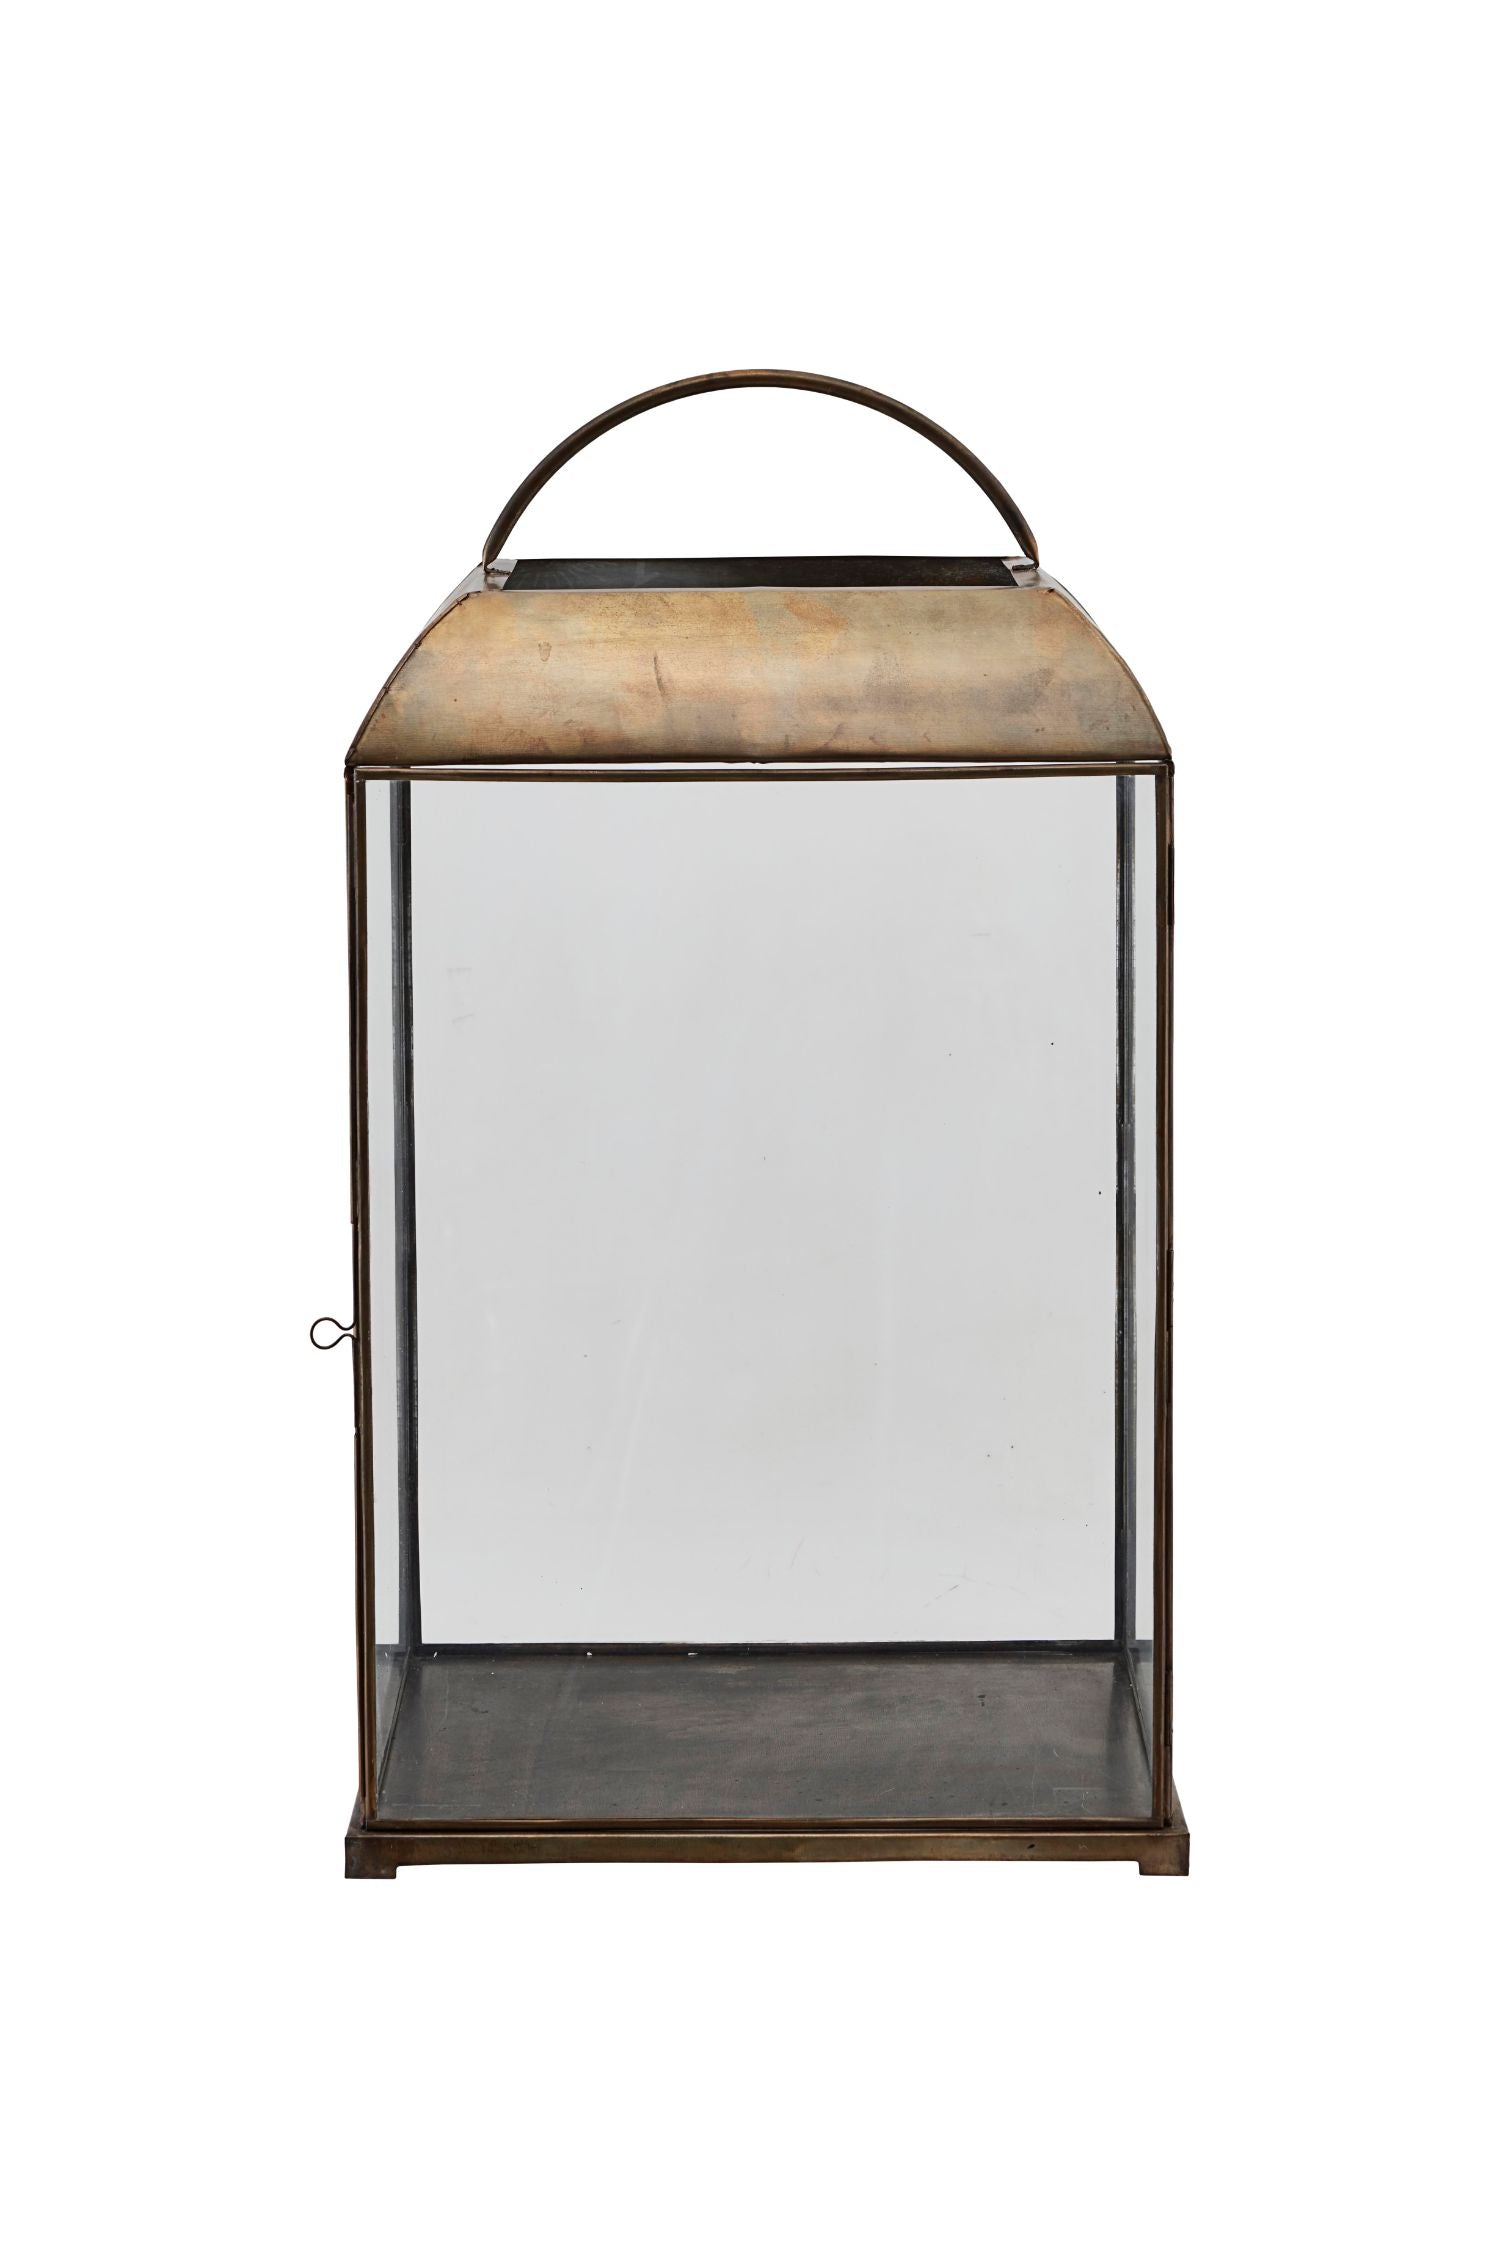 mandurai lantern antique brass tall